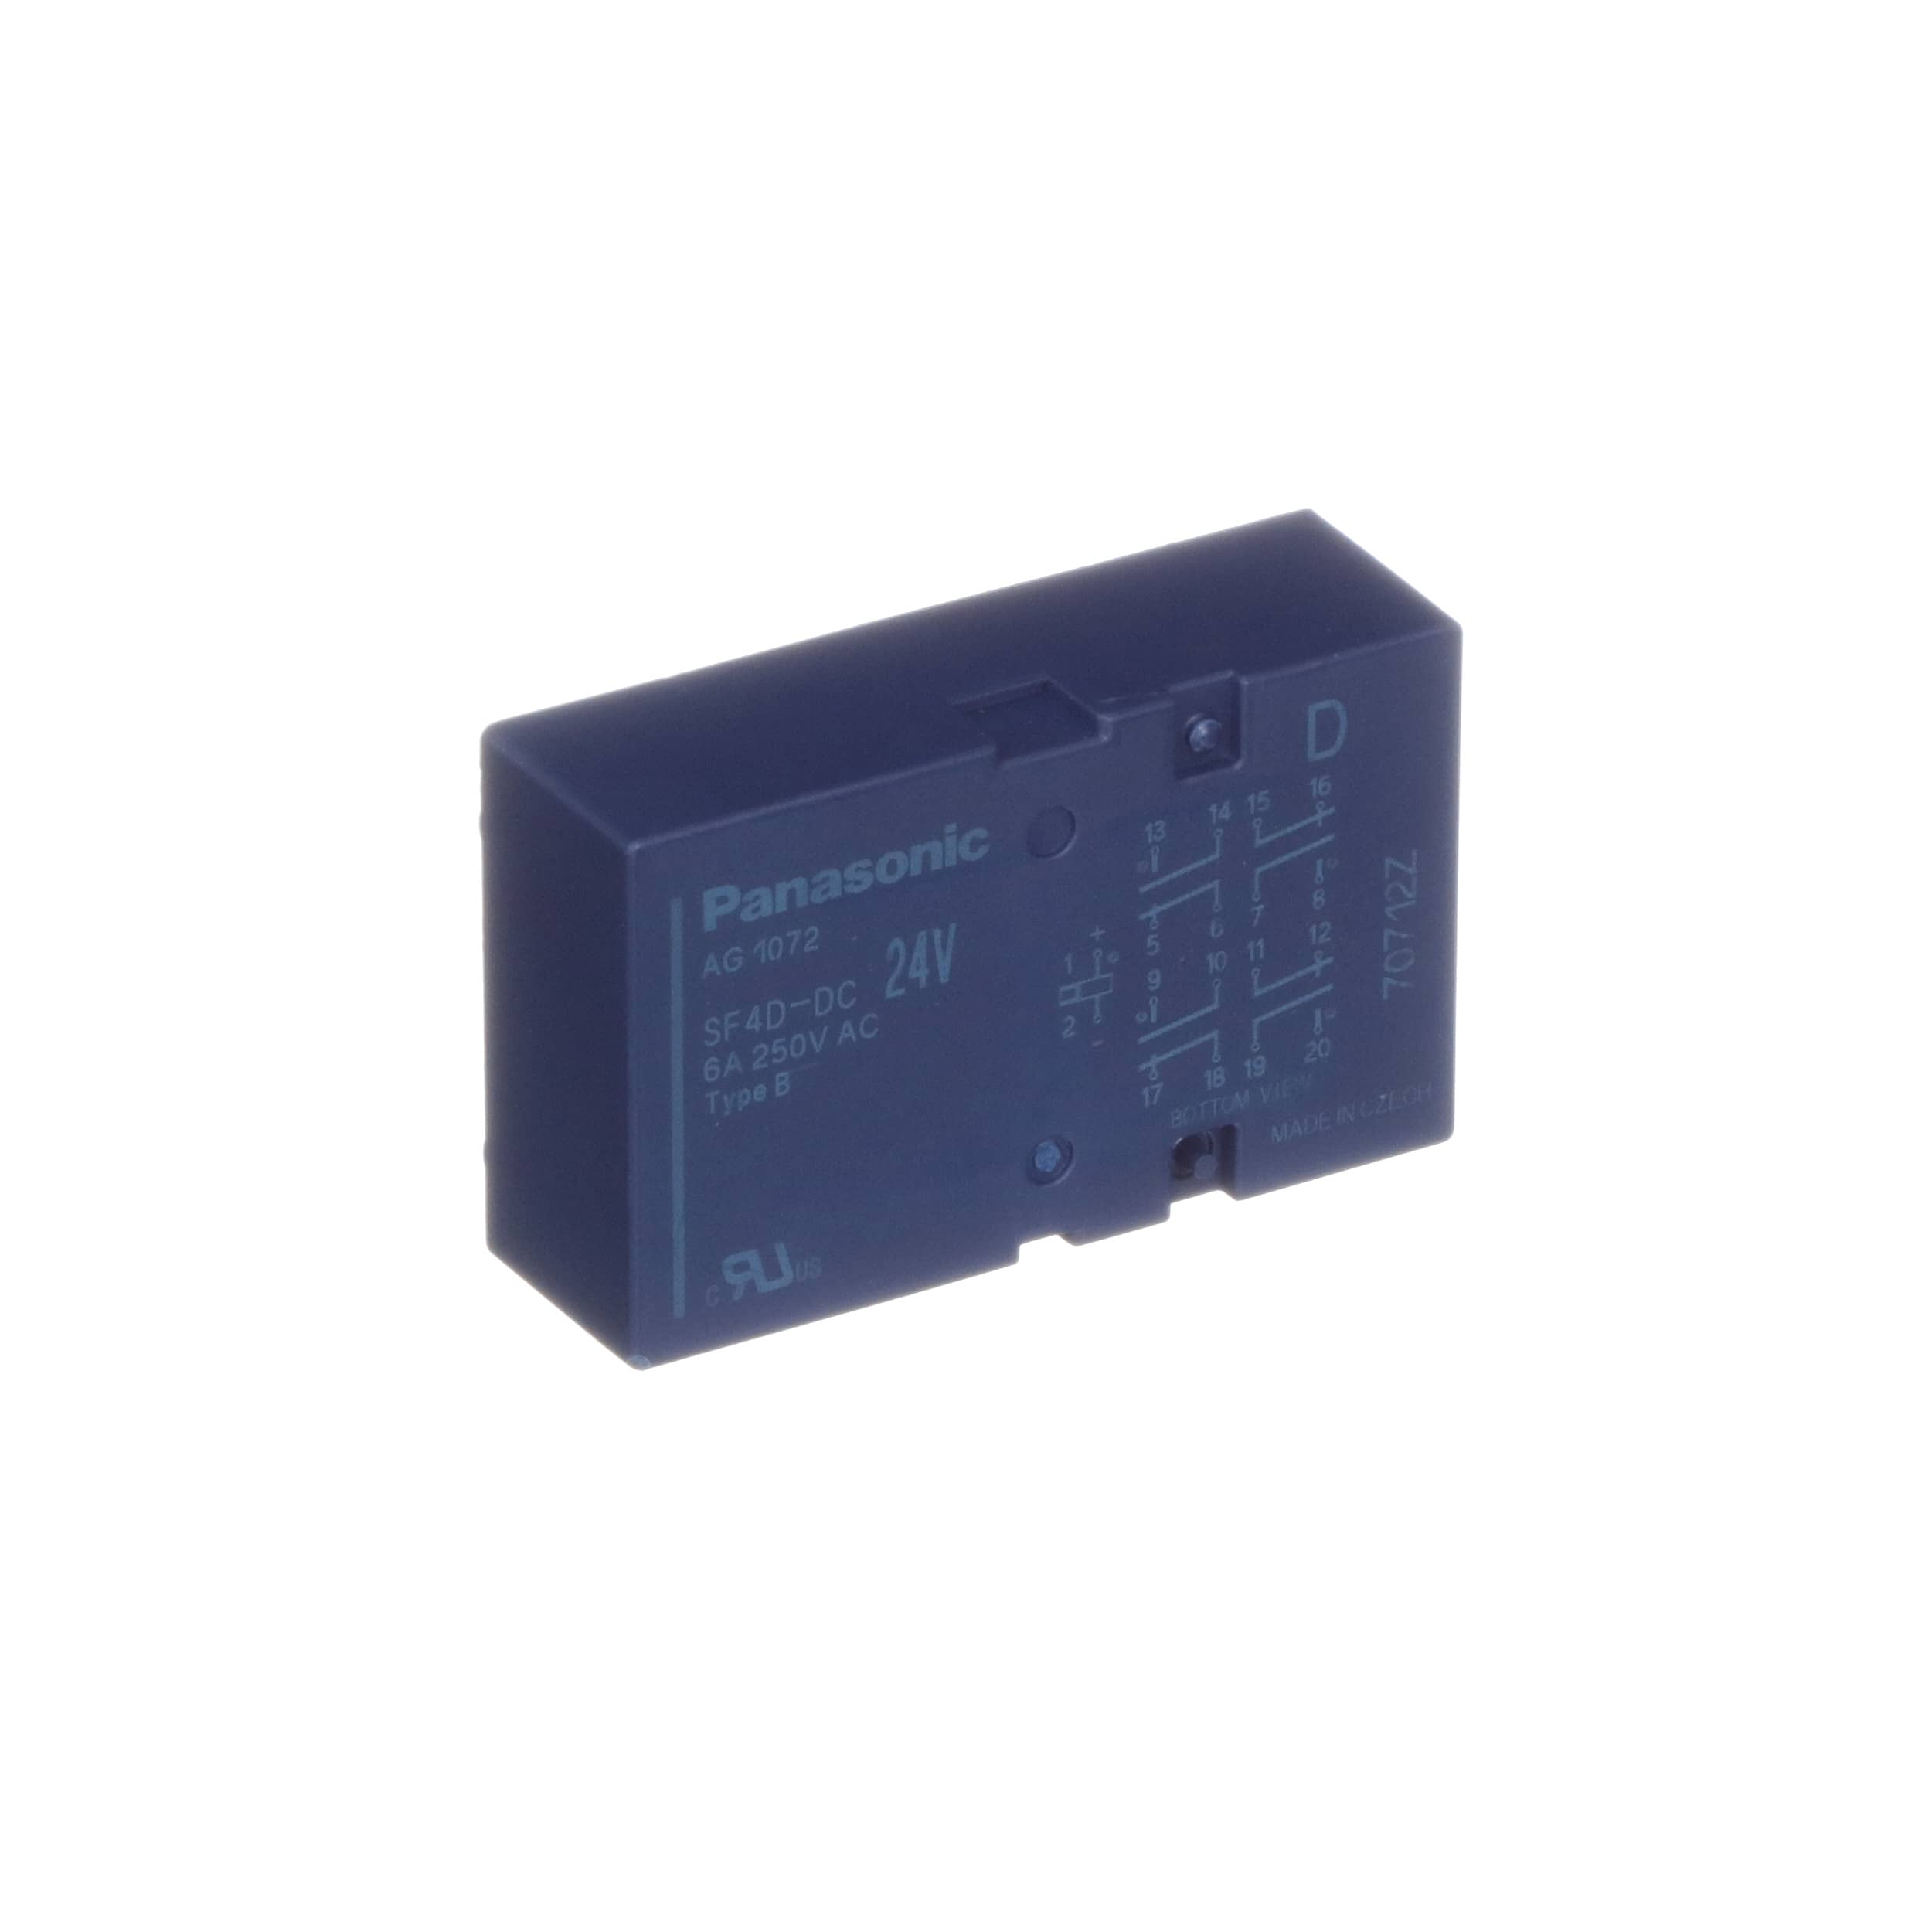 Panasonic Sf4d Dc24v Relay 6 A 64 250 Vac 30 Vdc Dip Reed All Electronics Corp 4nofrasl 4nc 115 Allied Automation